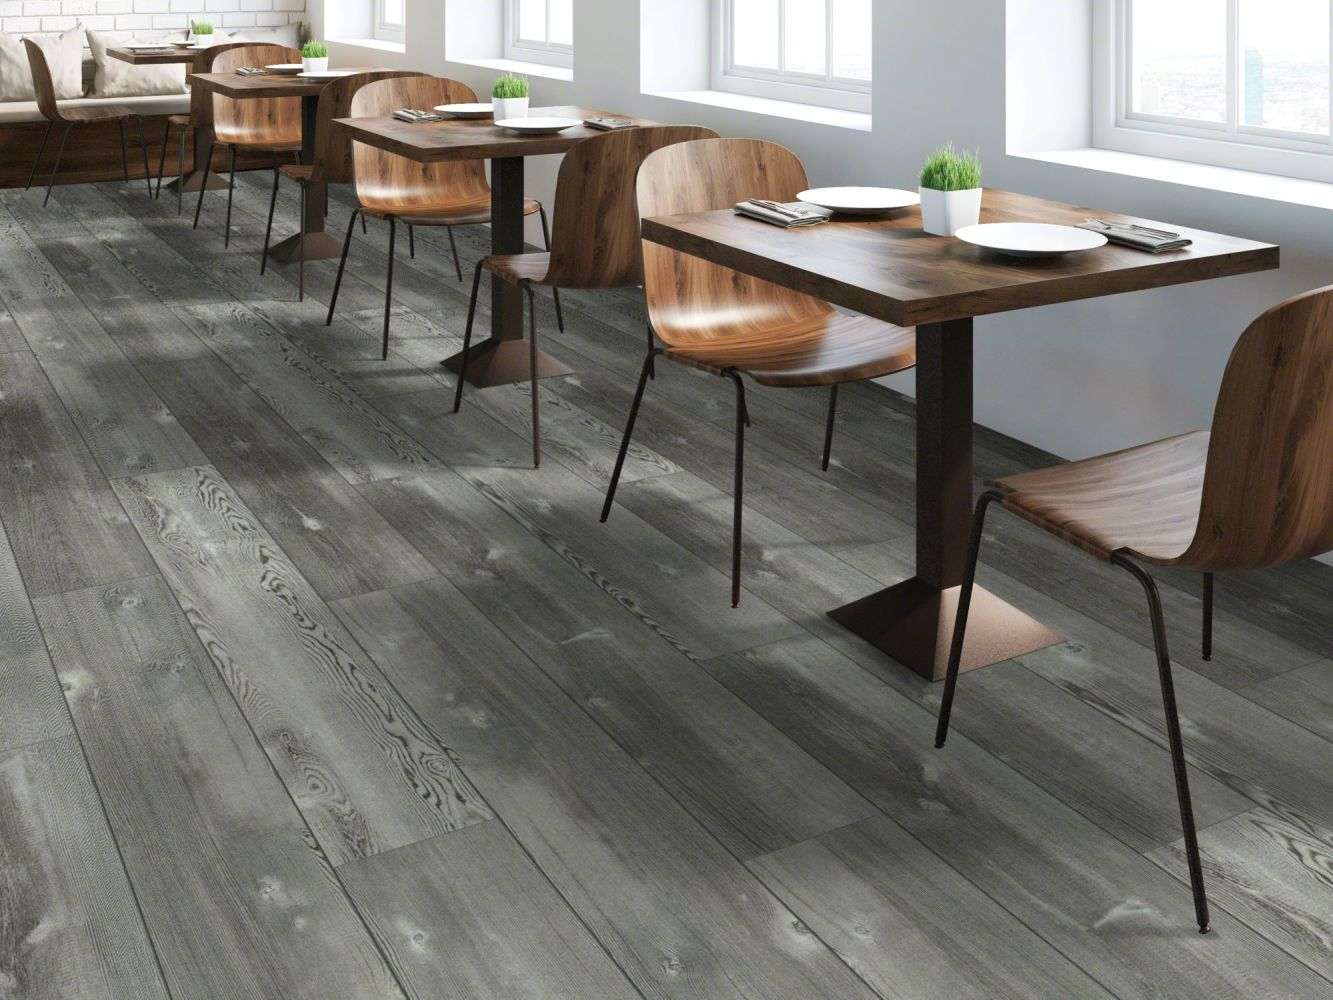 Shaw Floors Resilient Property Solutions Southern Pine 720c Plus Longleaf Pine 05007_513RG